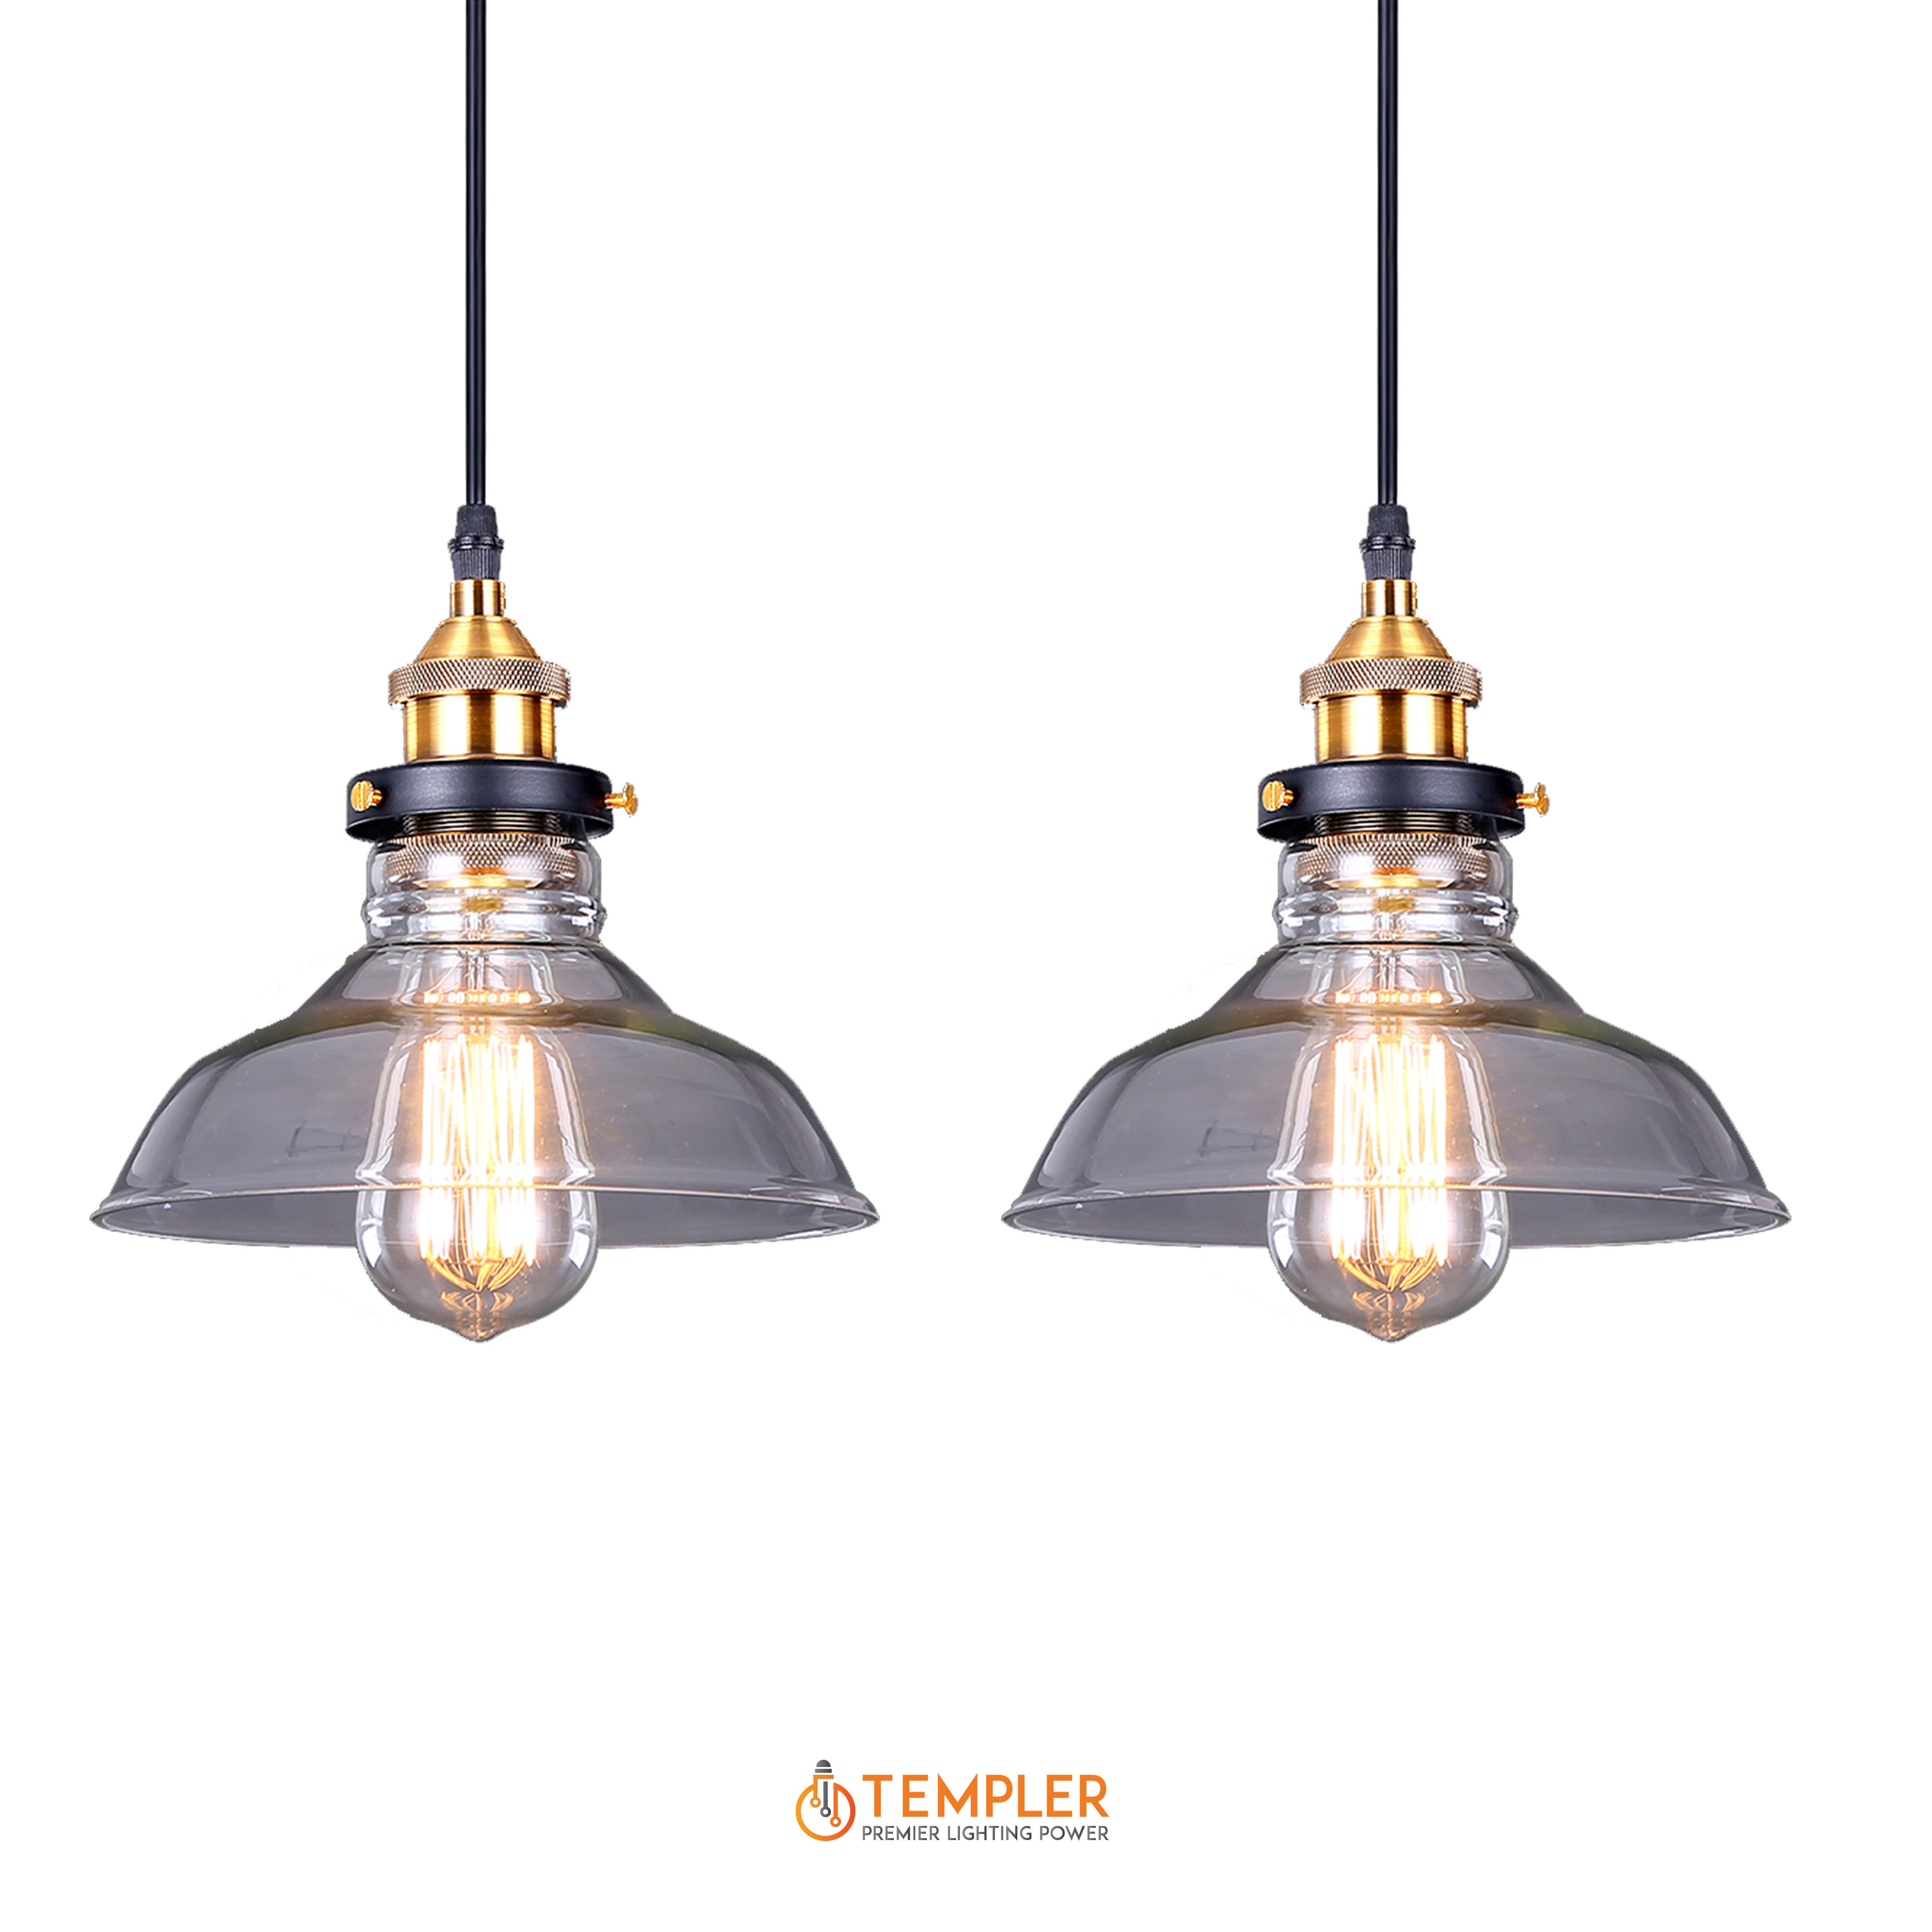 glass cone products blk ceiling shade hw market pendant socket patina light raw ceilings rb clear vsp vintage flea brass rx